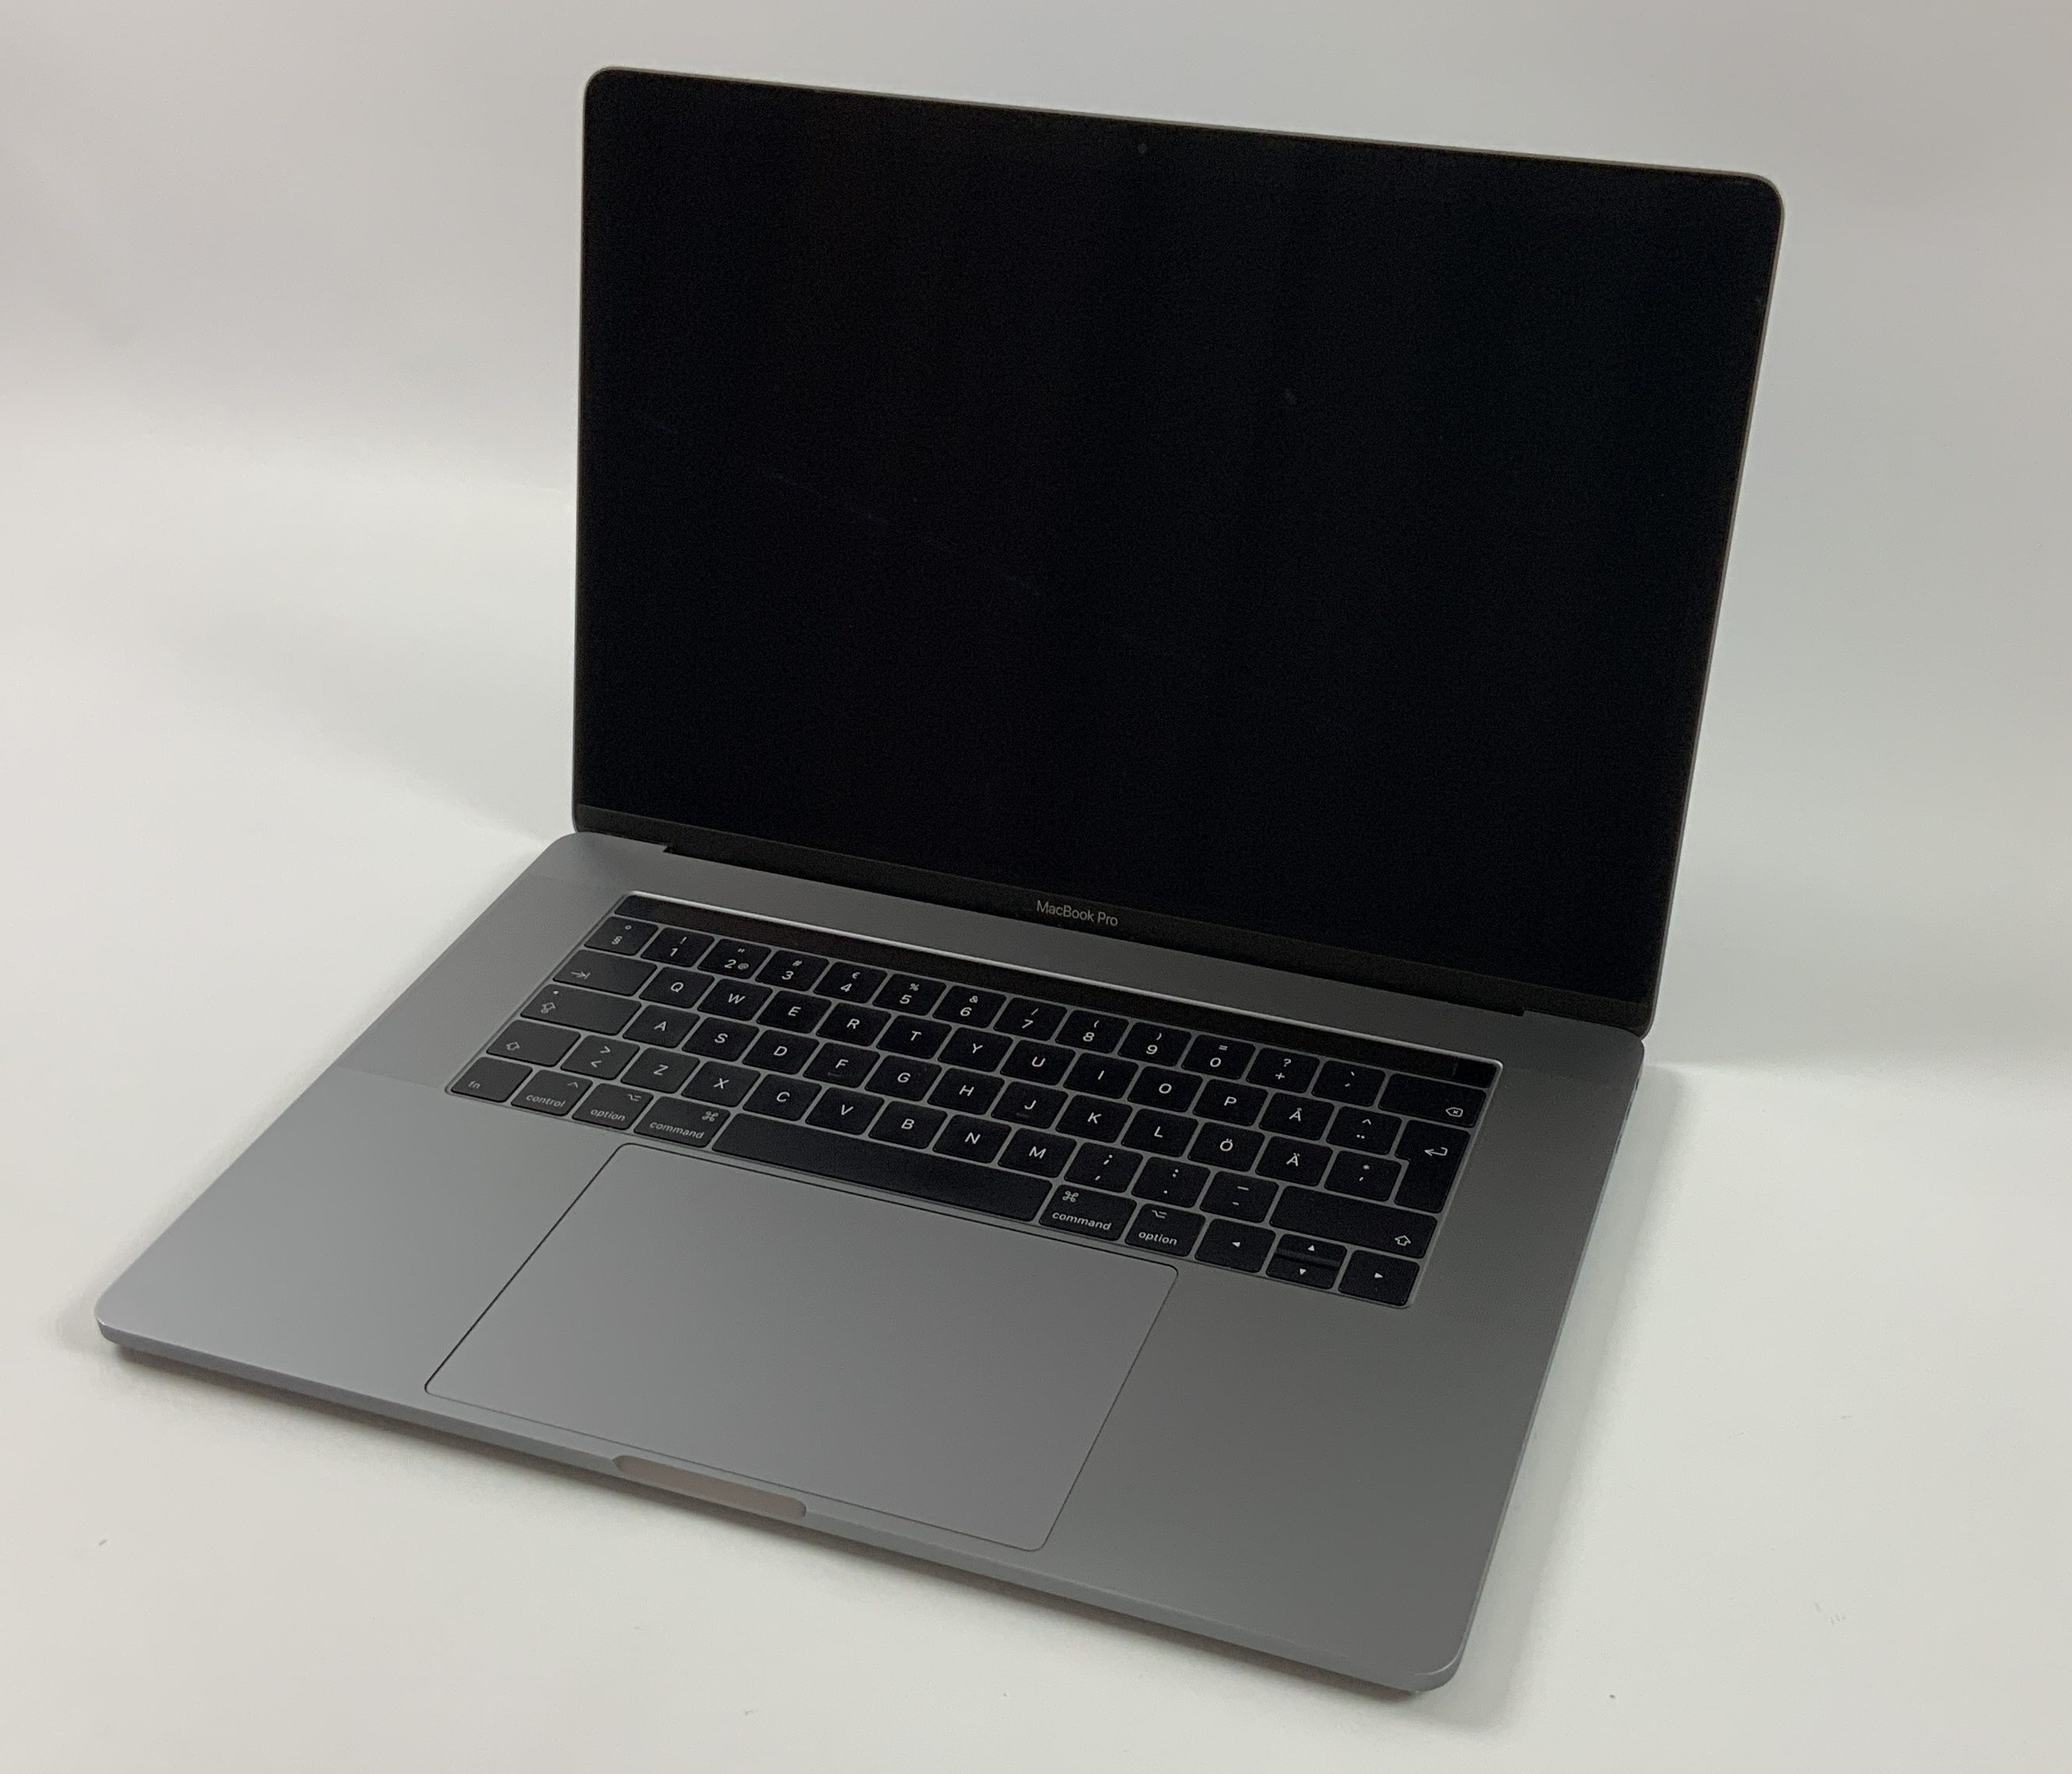 "MacBook Pro 15"" Touch Bar Mid 2017 (Intel Quad-Core i7 2.8 GHz 16 GB RAM 256 GB SSD), Space Gray, Intel Quad-Core i7 2.8 GHz, 16 GB RAM, 256 GB SSD, immagine 1"